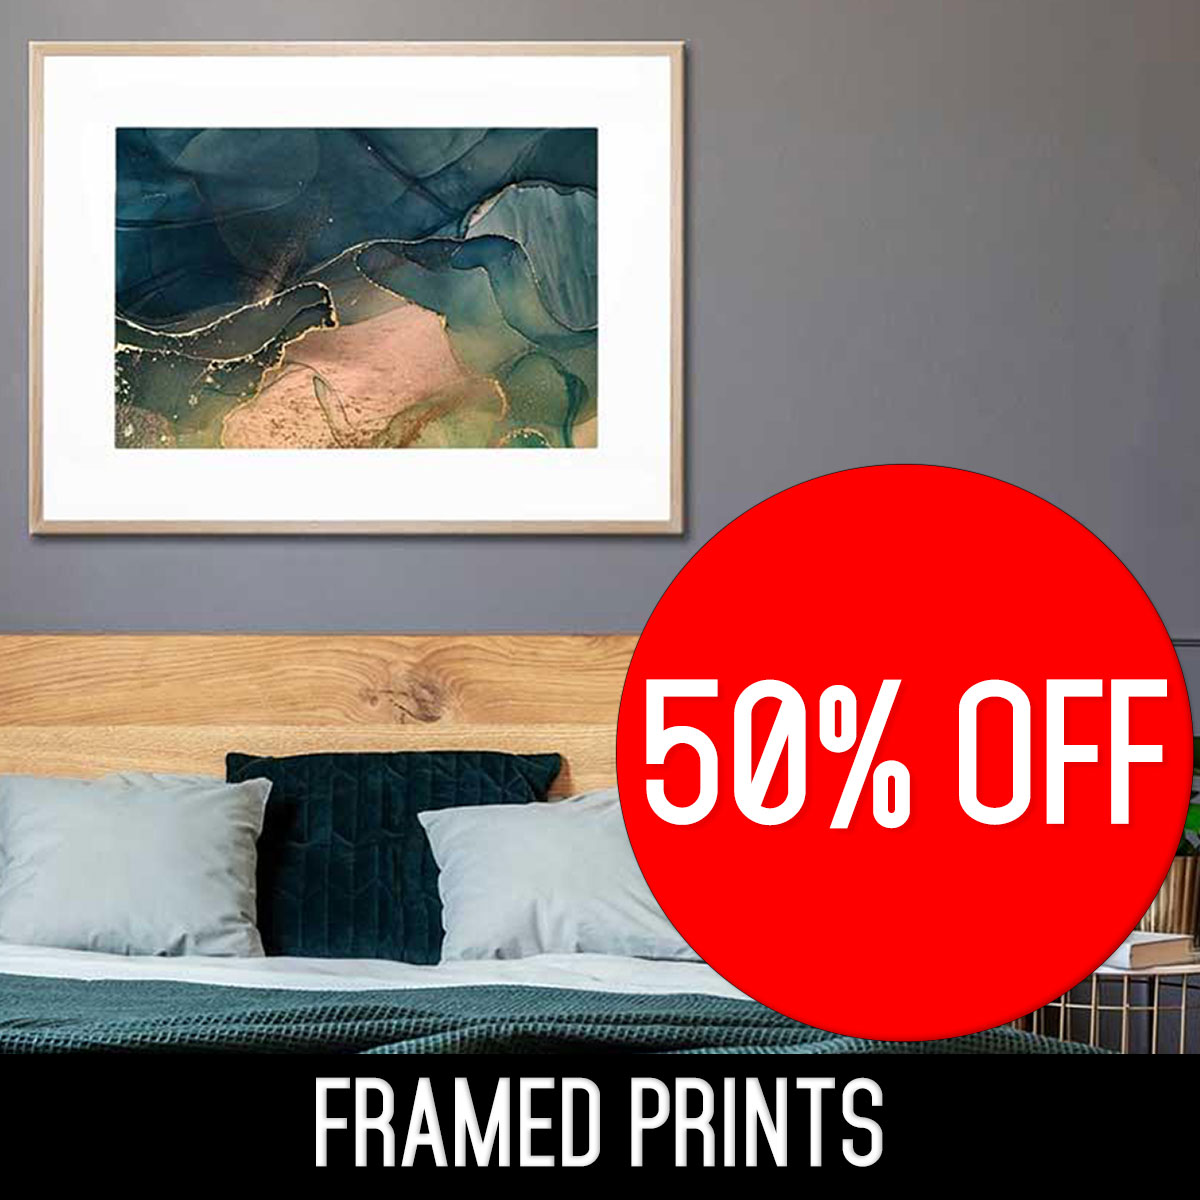 View All Framed Prints